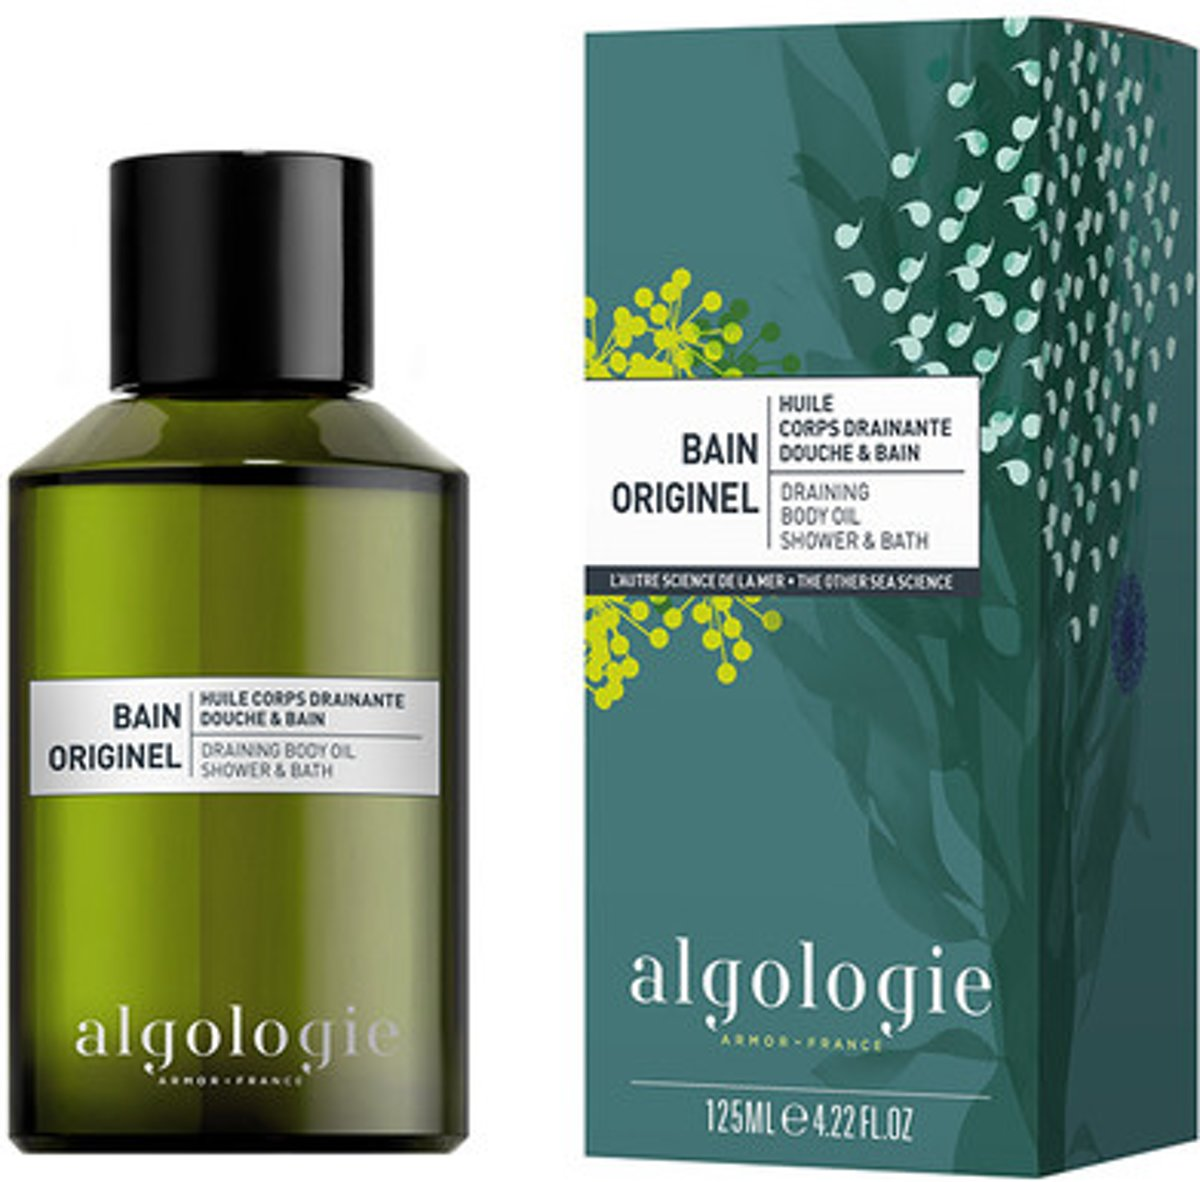 Algologie Bain Originel Draining Body Oil